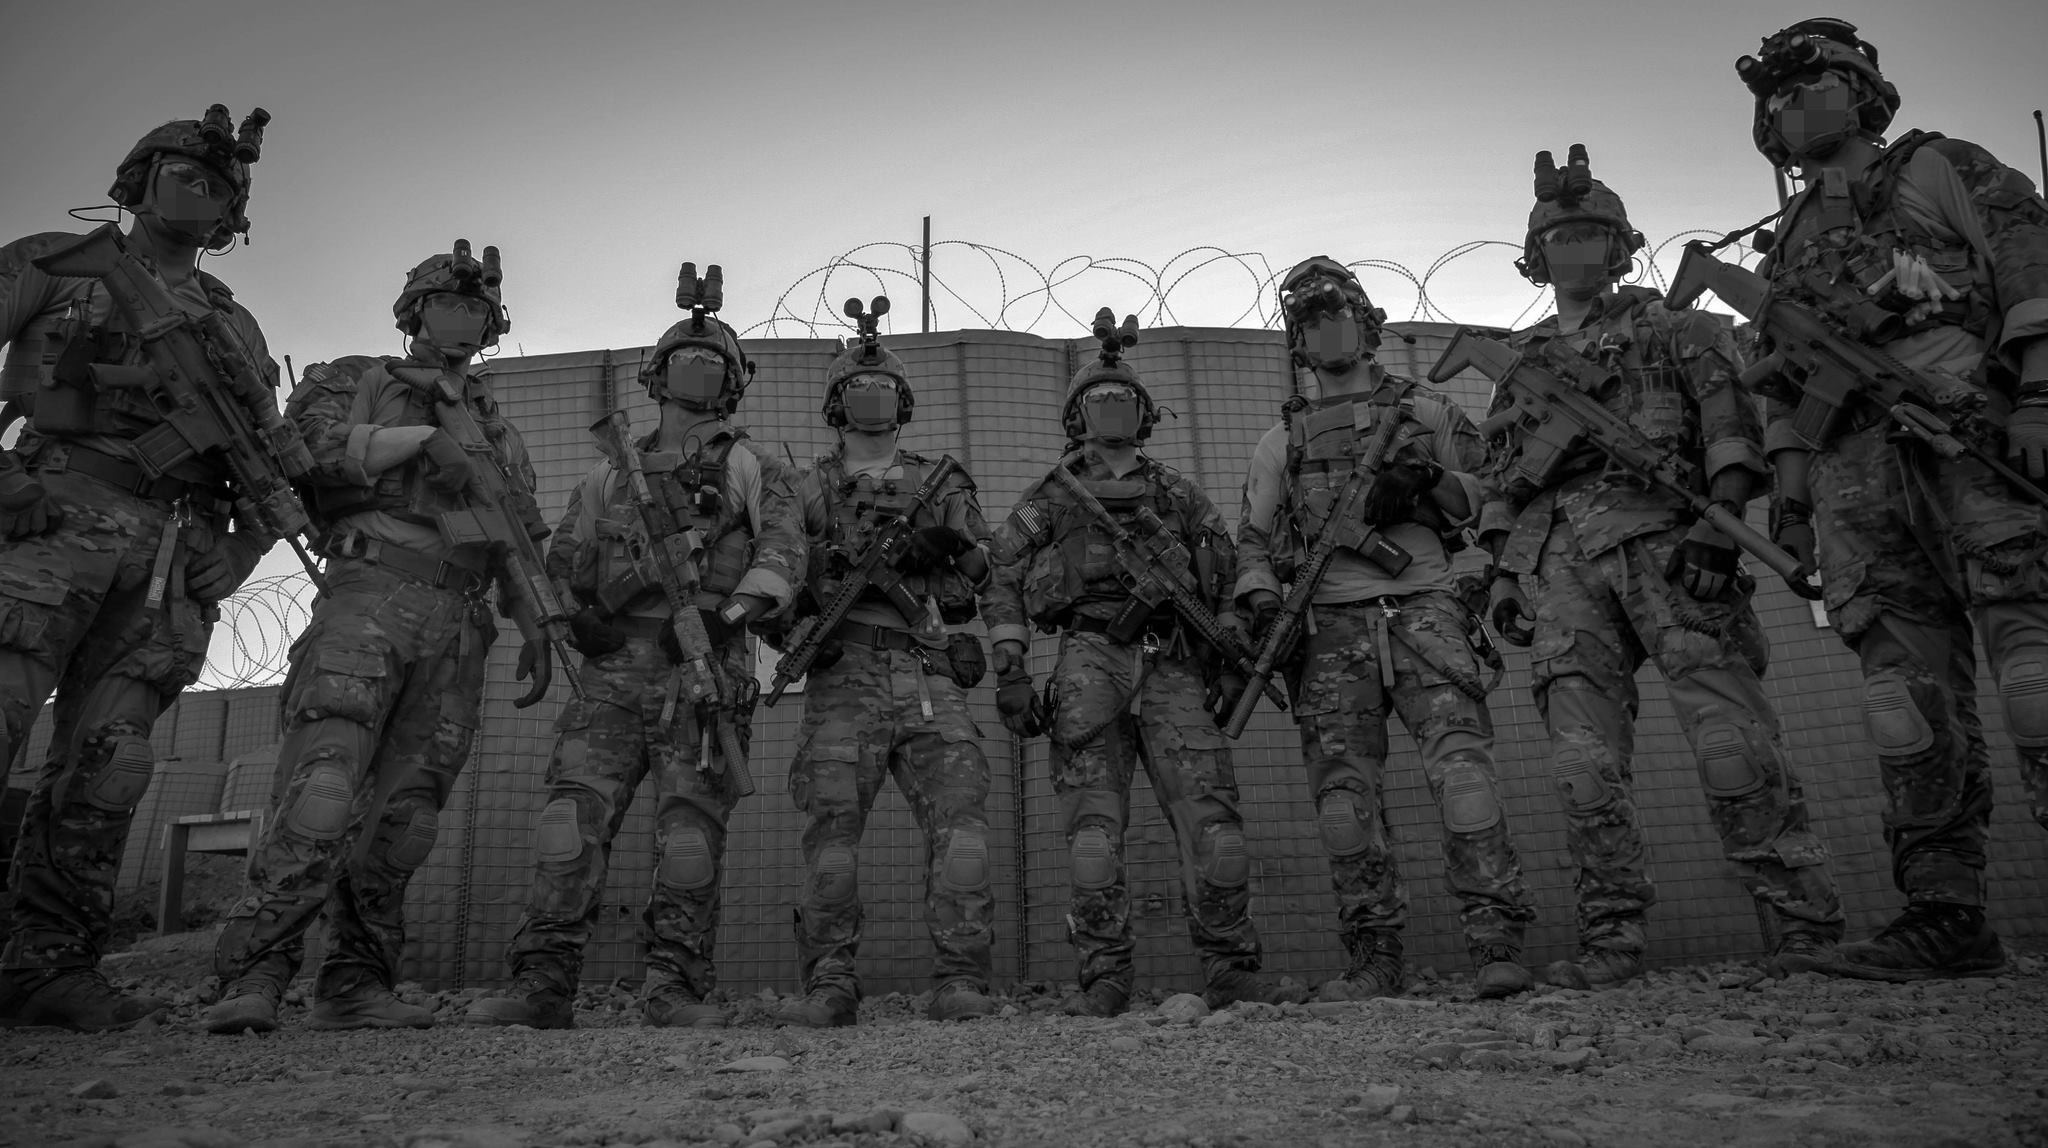 Badass army wallpapers 68 images - Military wallpaper army ...